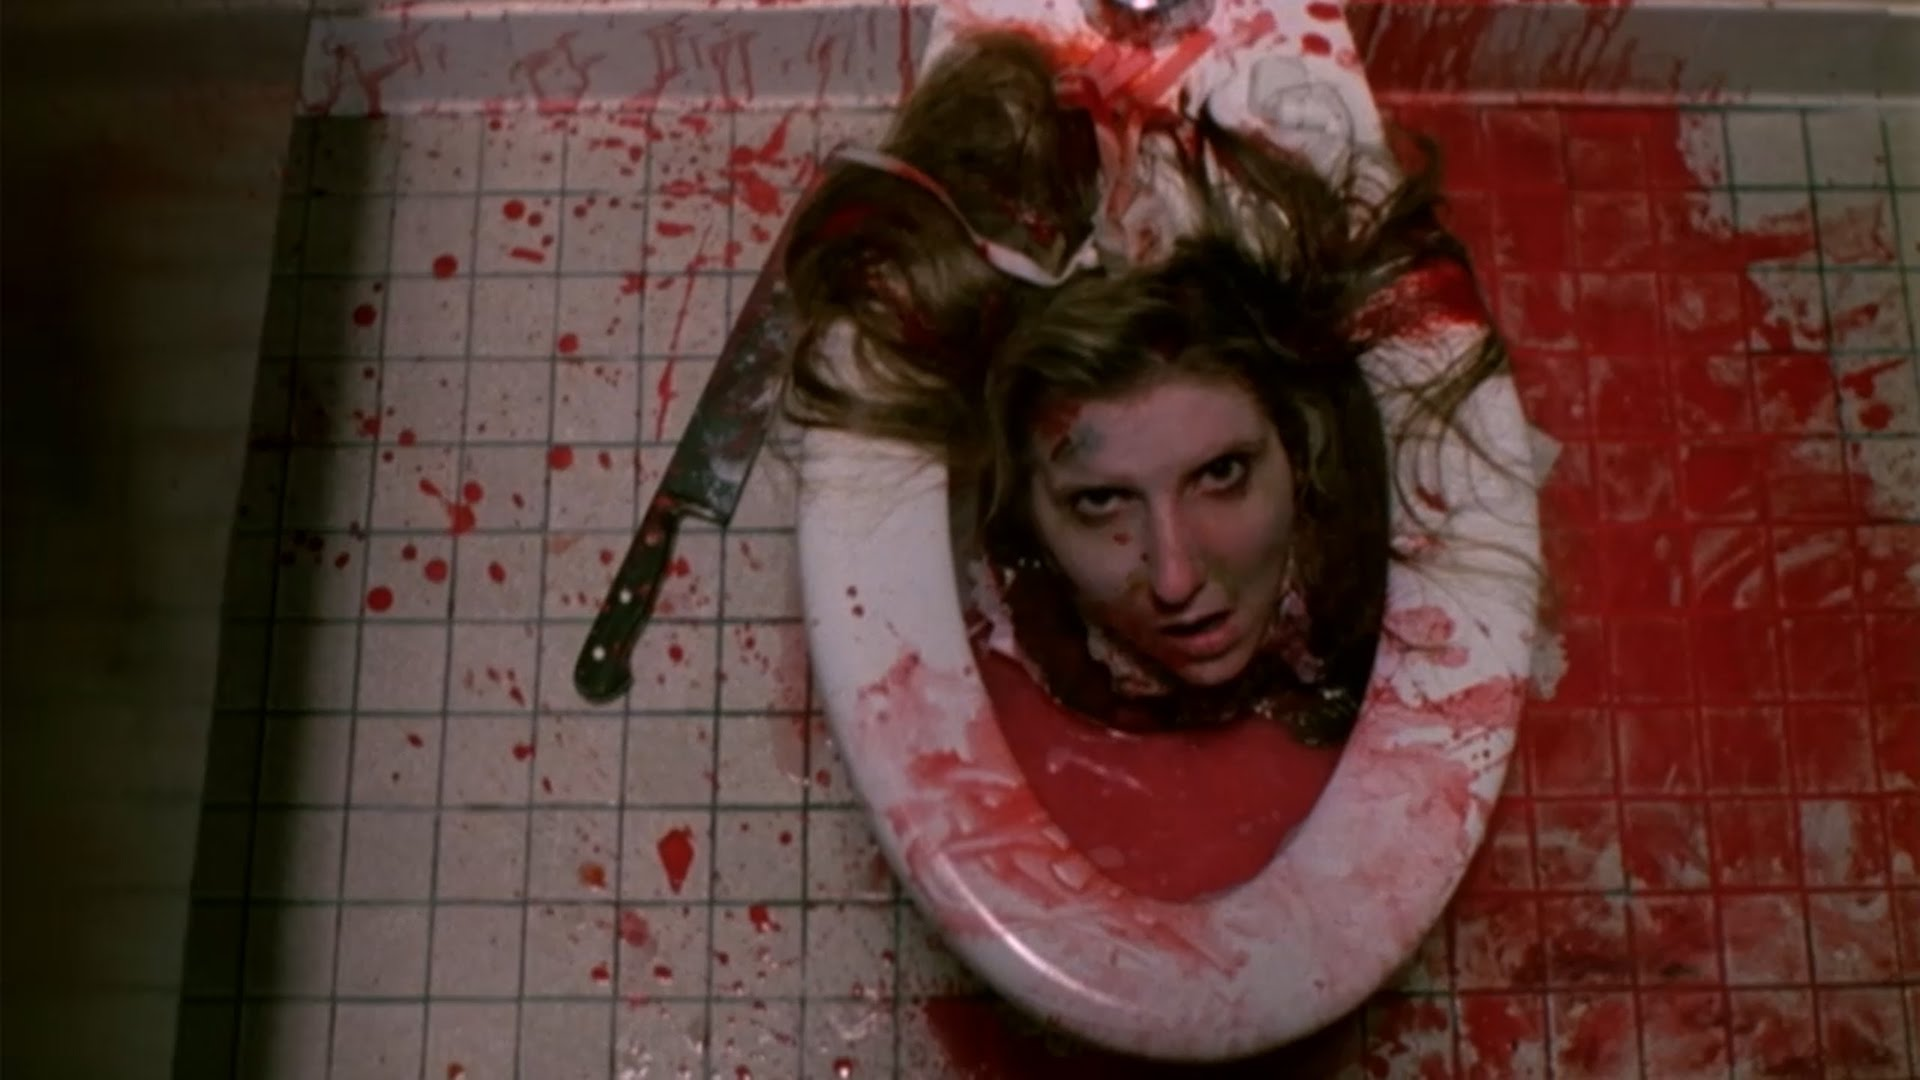 Retro Nightmares] Revisiting Bloody Slasher 'The House on Sorority Row' -  Bloody Disgusting